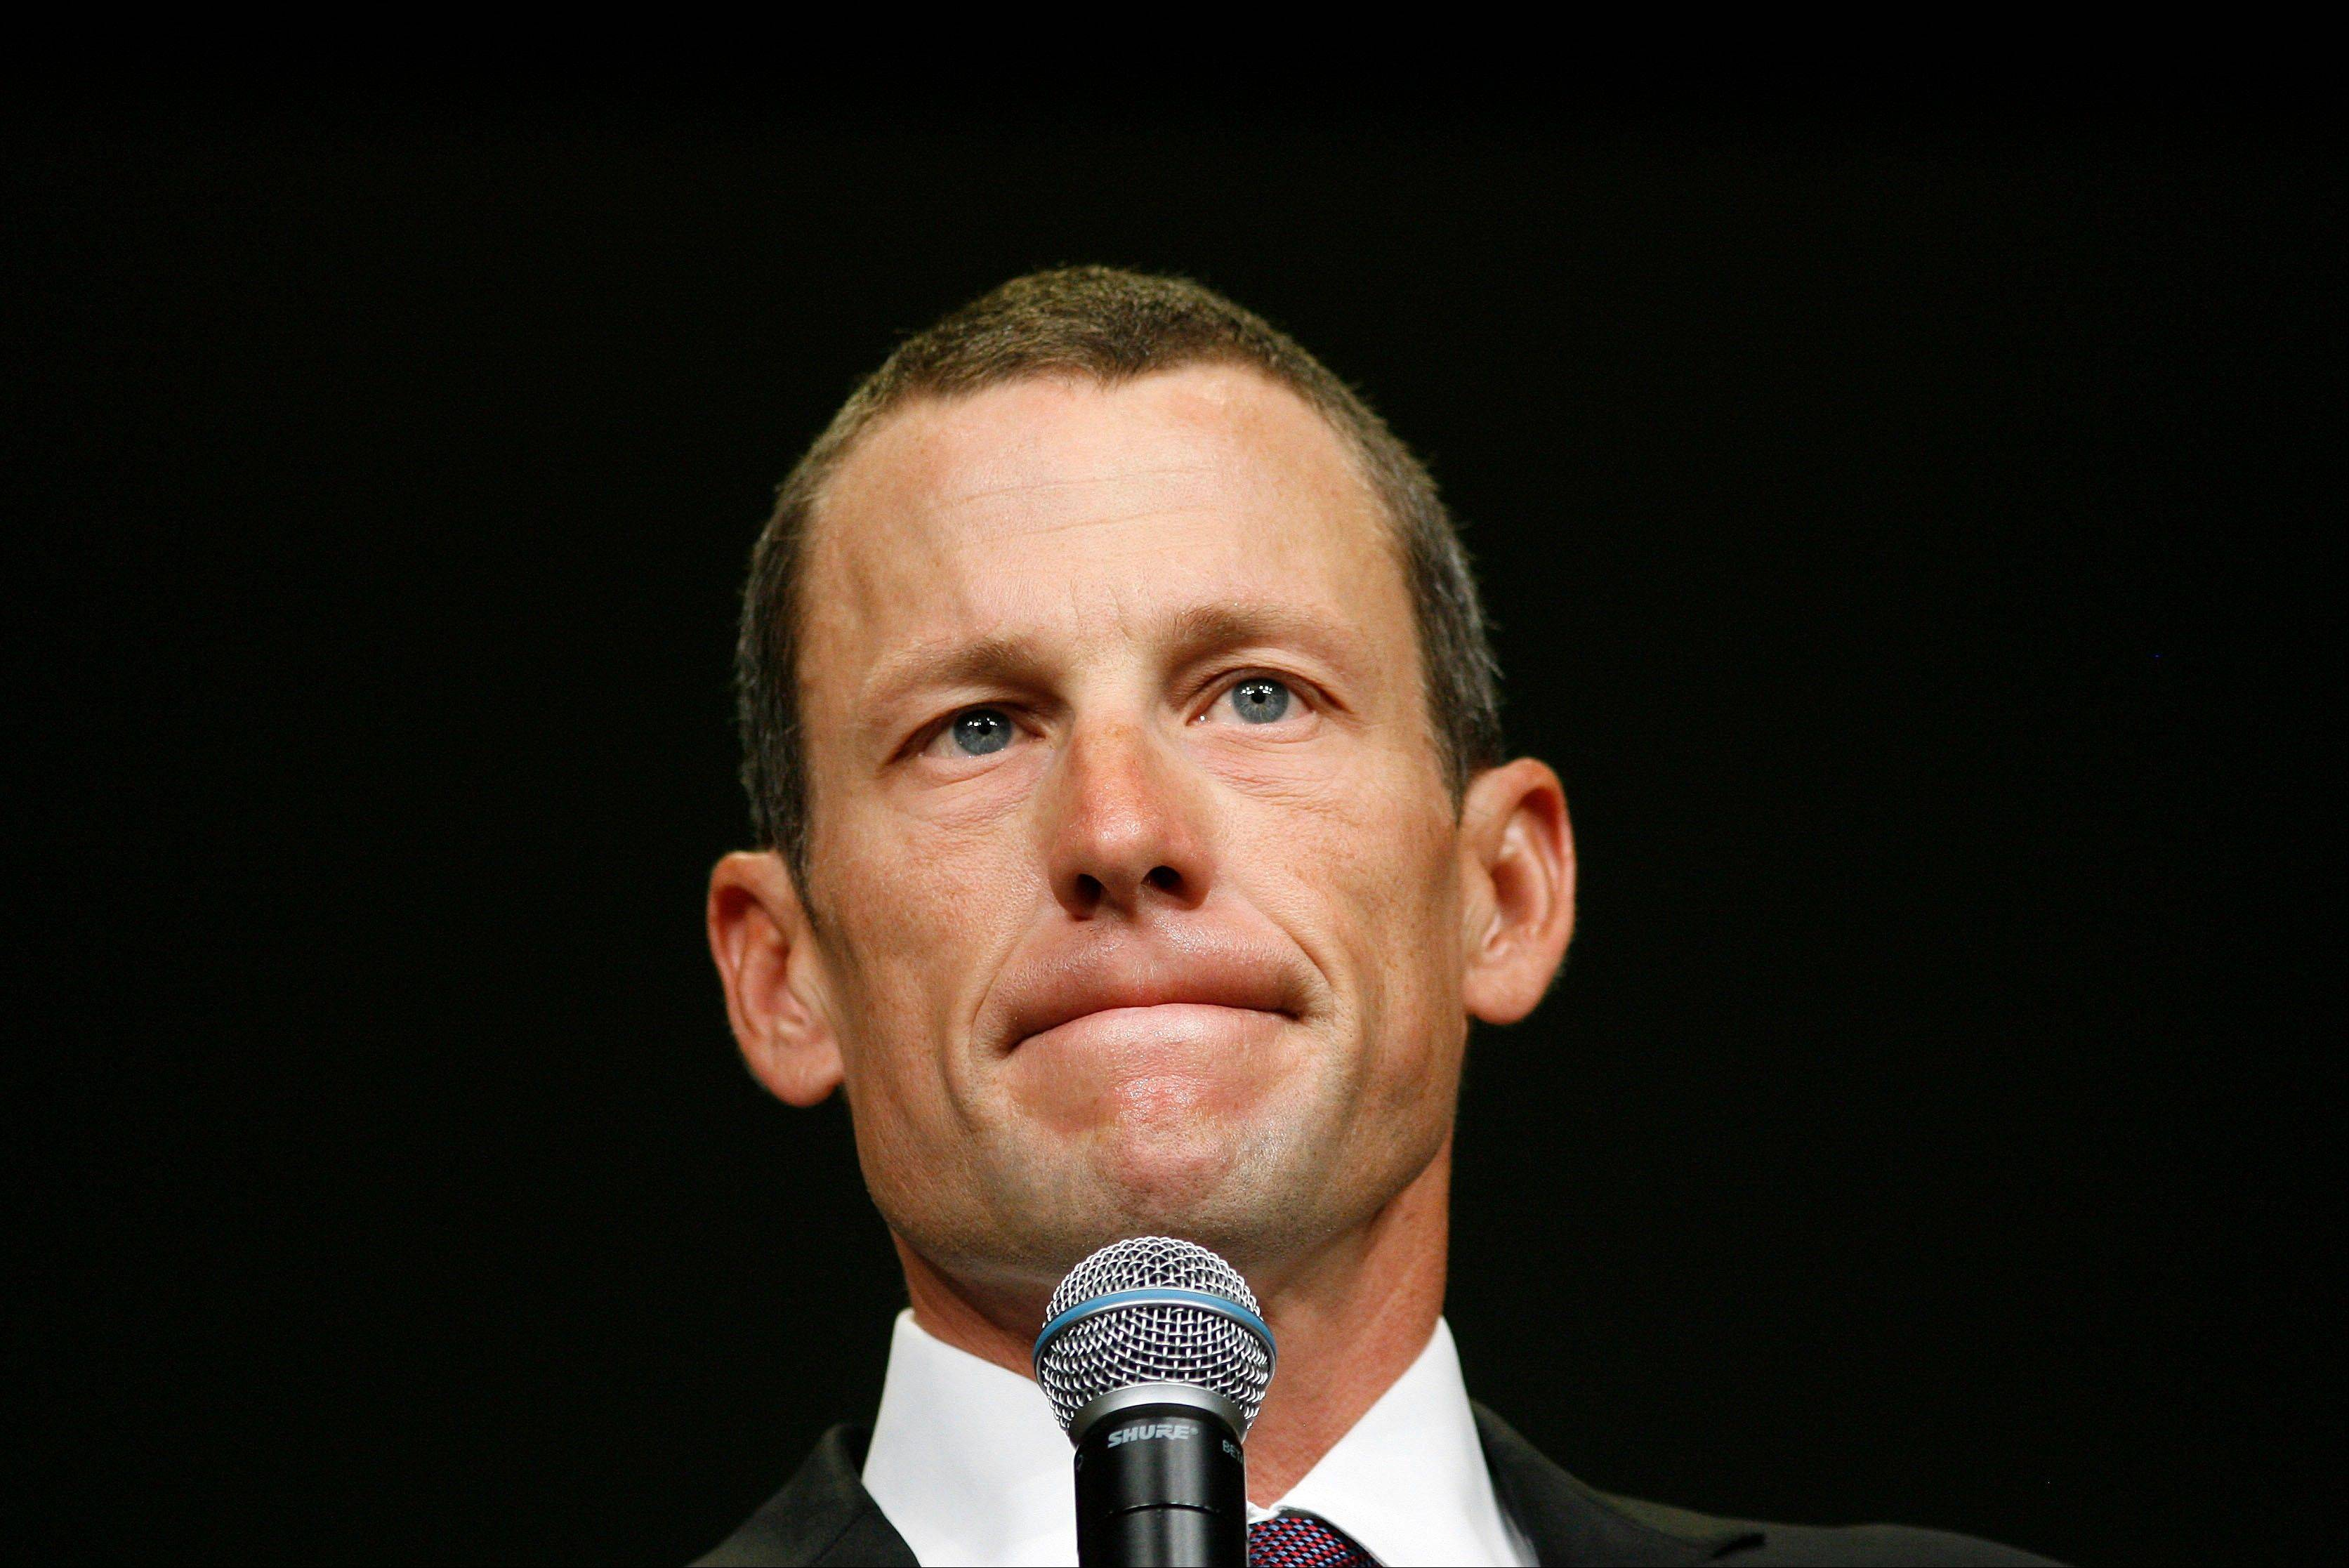 Lance Armstrong spoke to the Livestrong staff on Monday before he slipped away for an interview at a hotel with Oprah Winfrey.